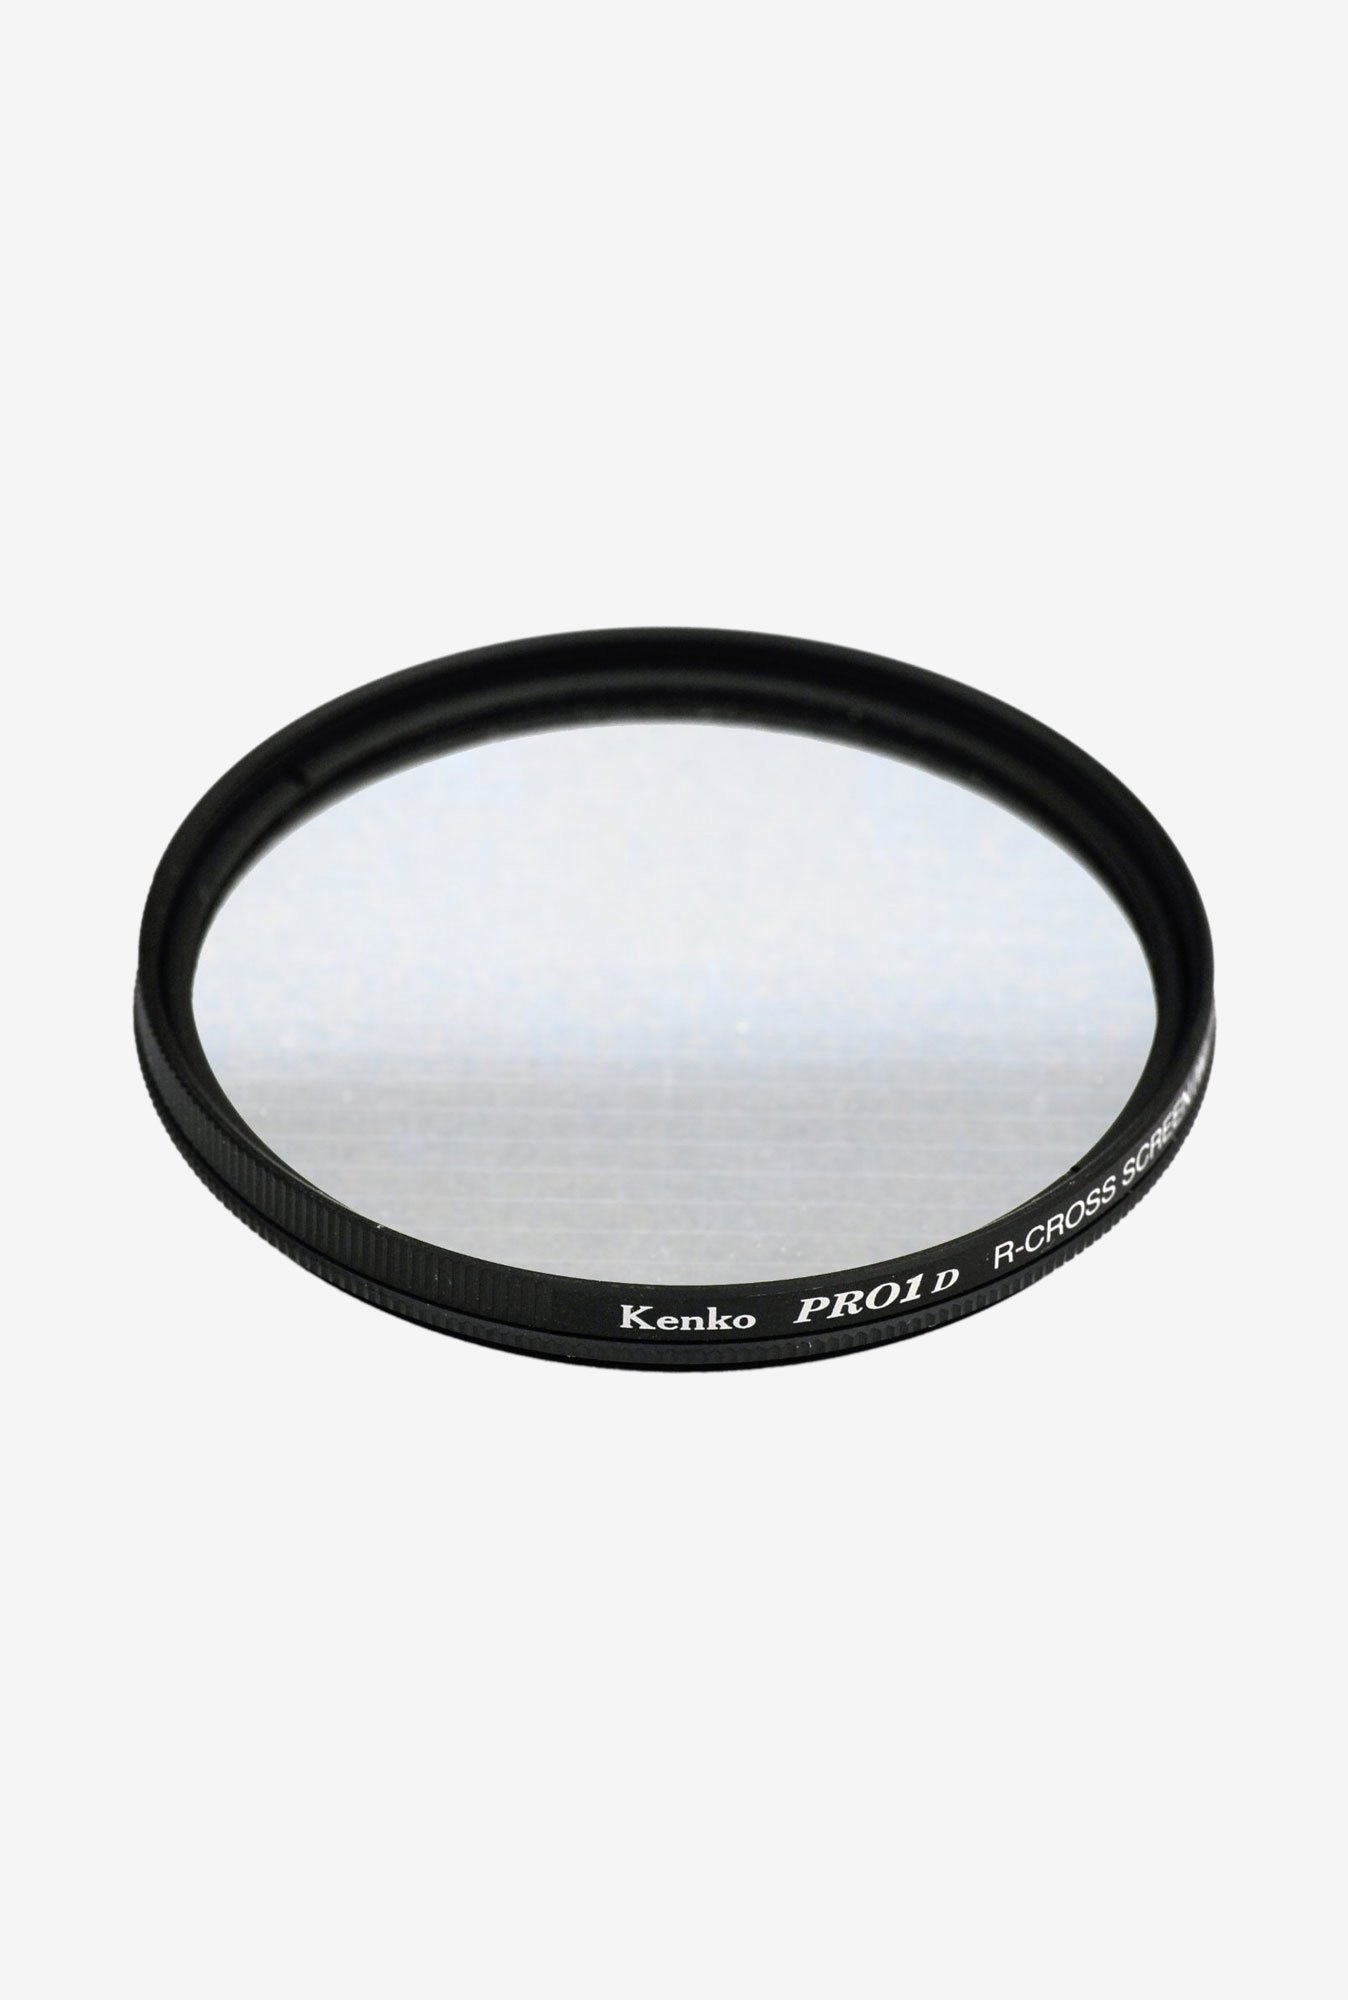 Kenko 77mm Pro1D R-Cross Screen Wide Lens Filter (Black)